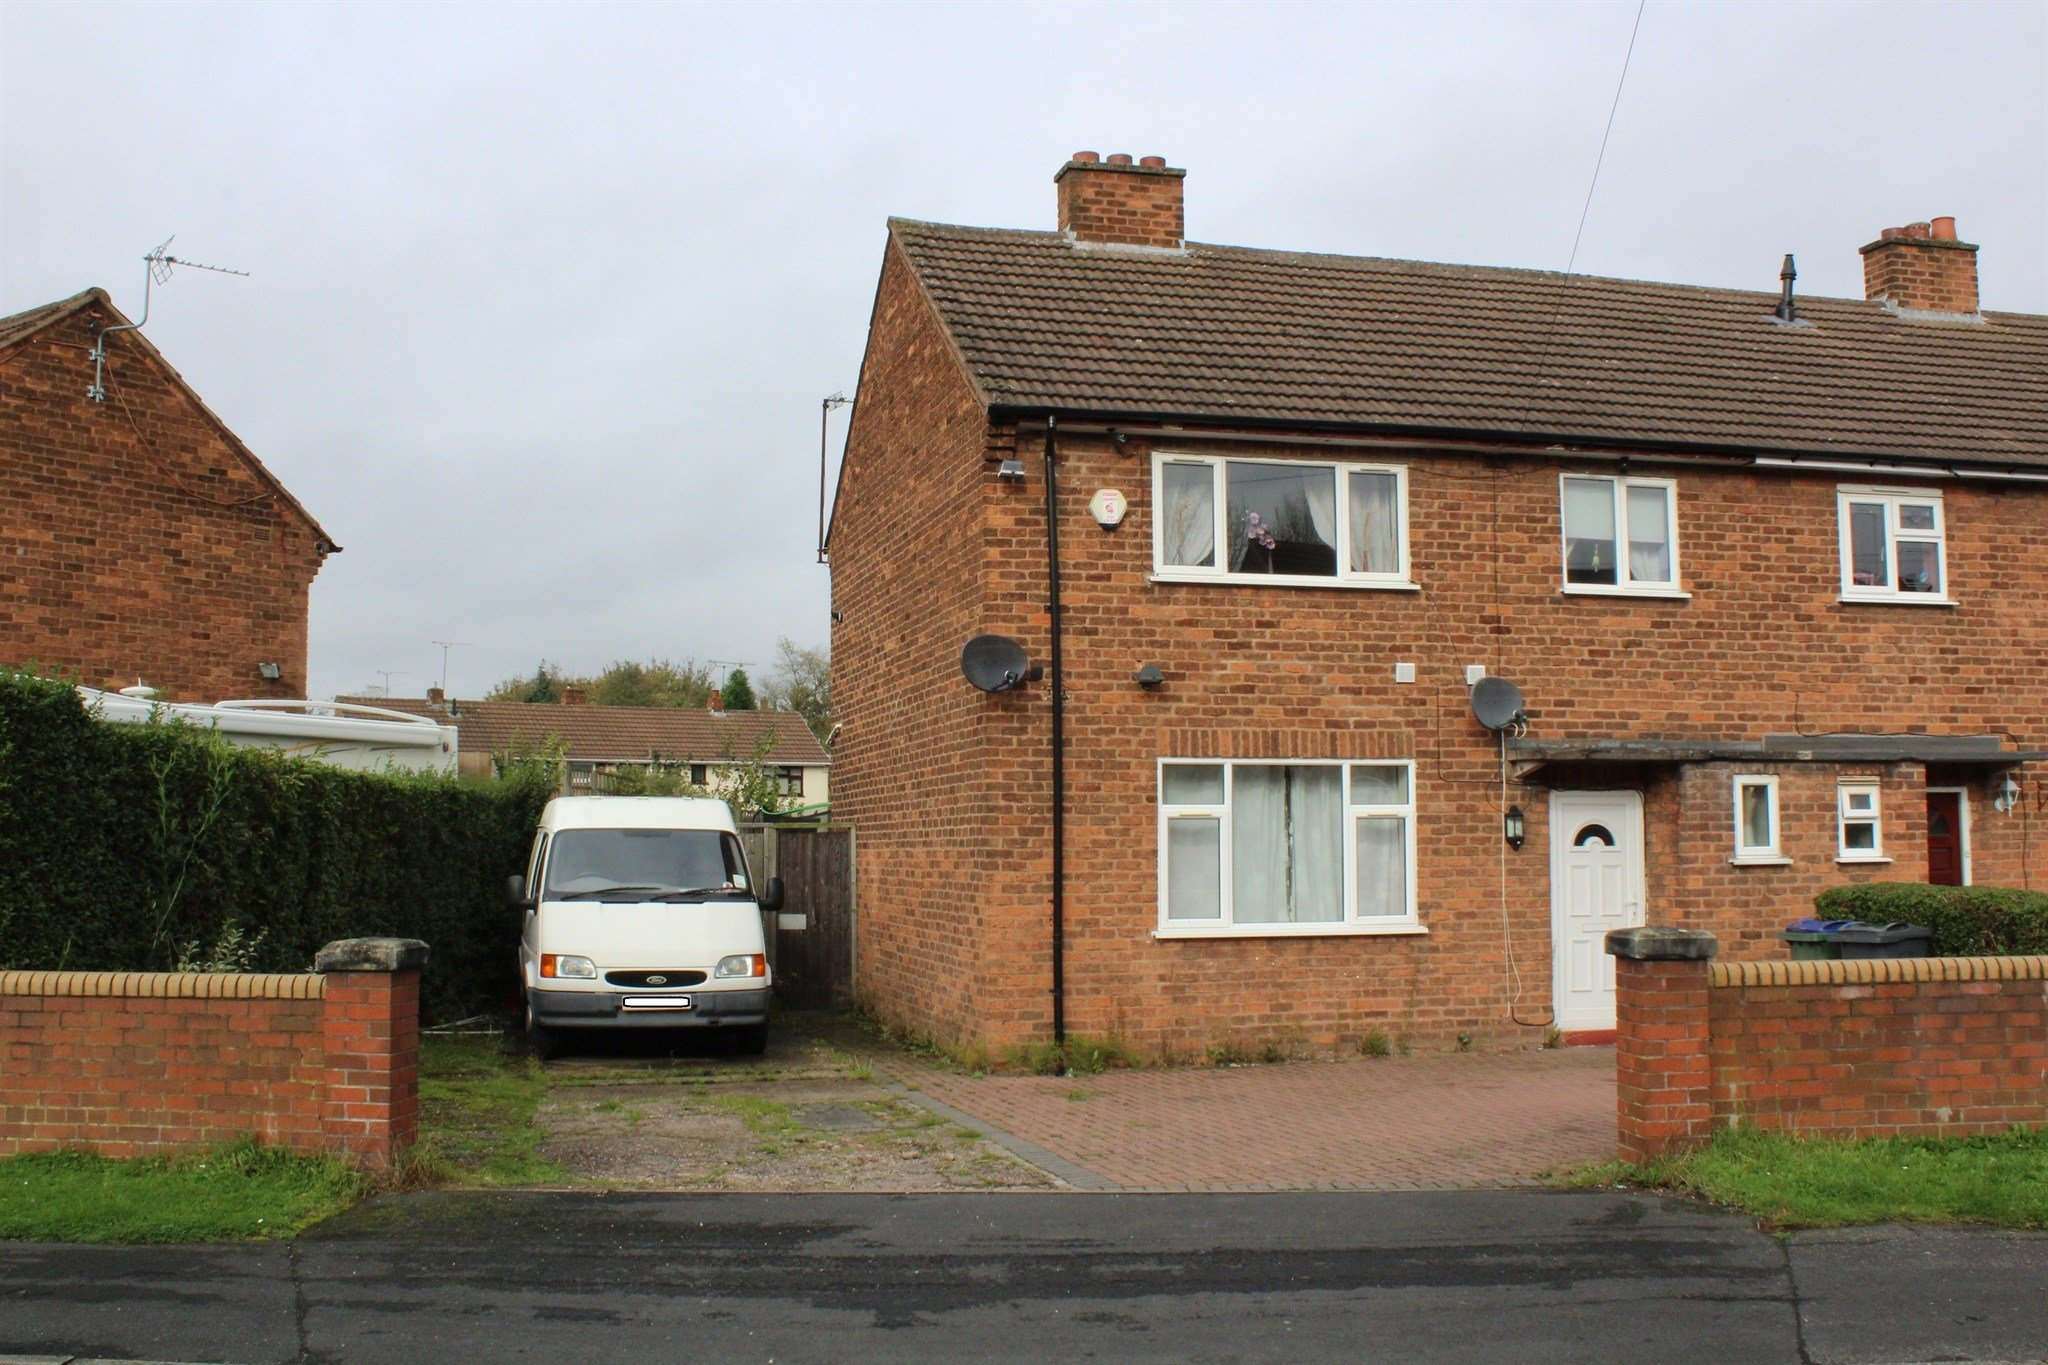 Best 3 Bedroom House For Sale Oval Road Tipton Dy Dy4 9Rs With Pictures